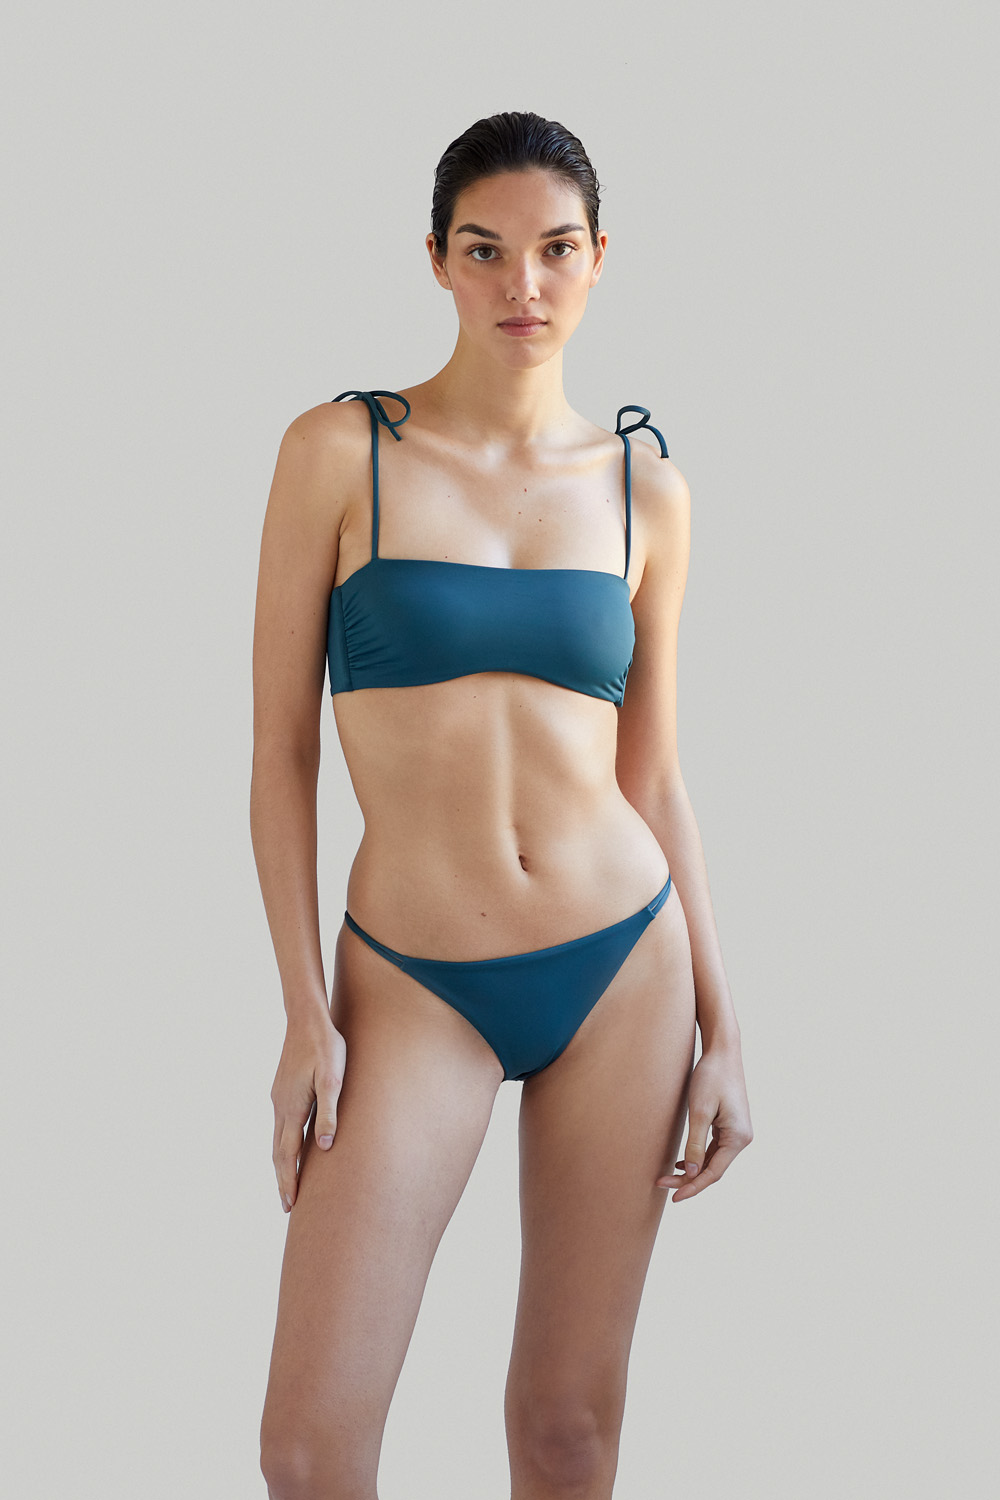 Sustainable Luxury Swimwear / Ropa de baño sostenible, eco bikini / bikini ecológico. Lio + Milos in algae, by NOW_THEN